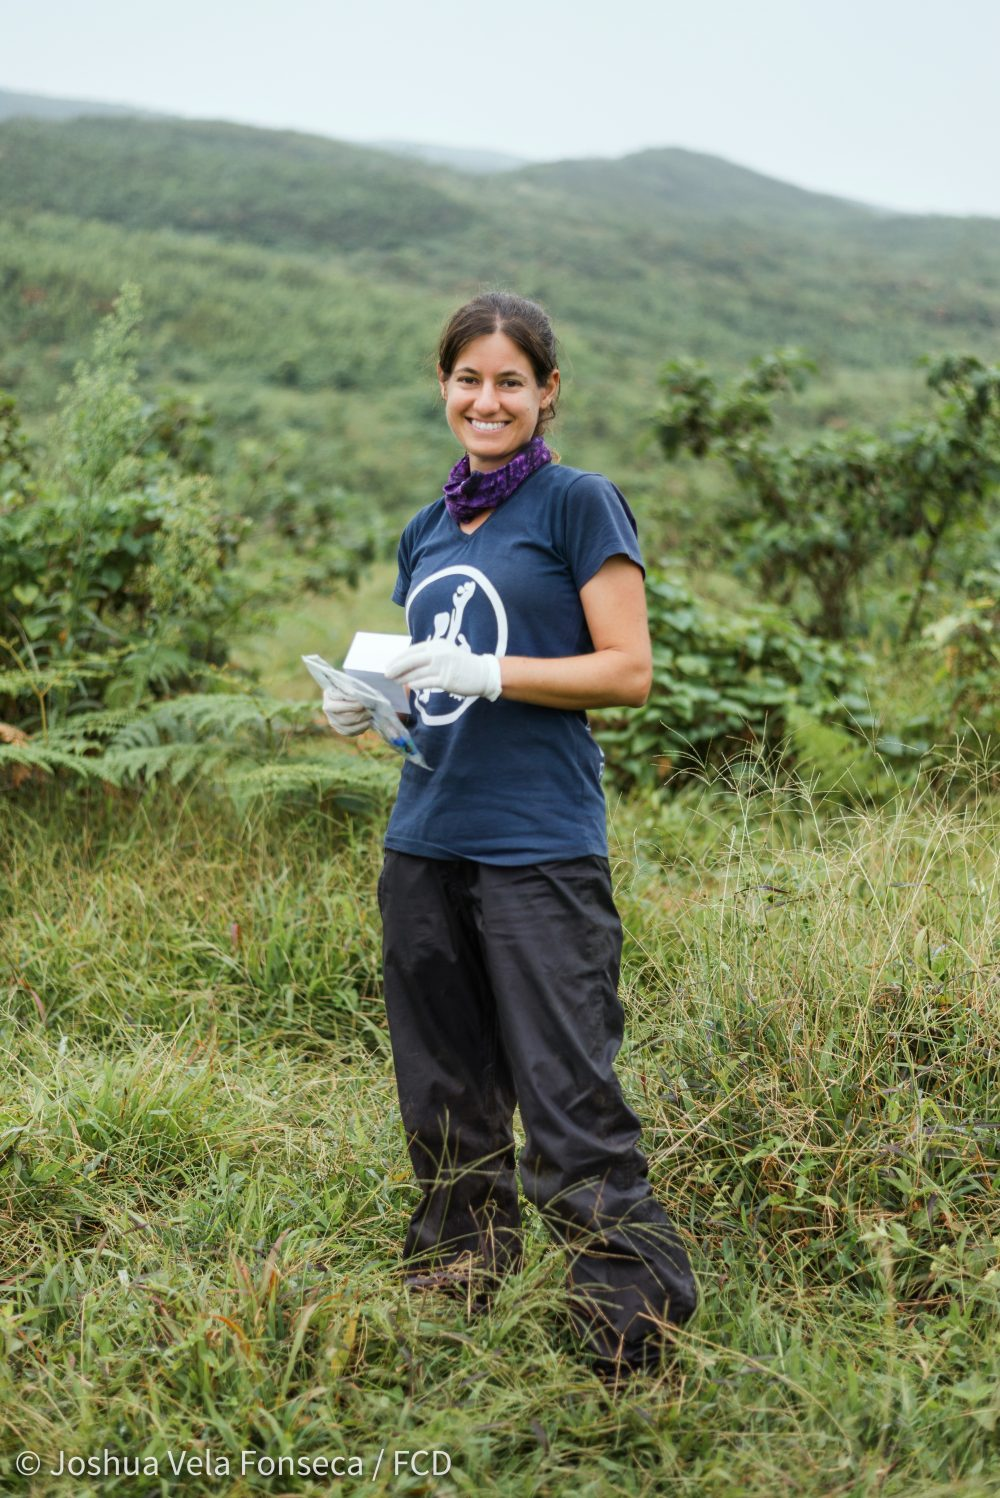 Dr Ainoa Nieto out in the field prior to the enforced lockdown during the height of the COVID-19 outbreak © Joshua Vela Foncesca/FCD